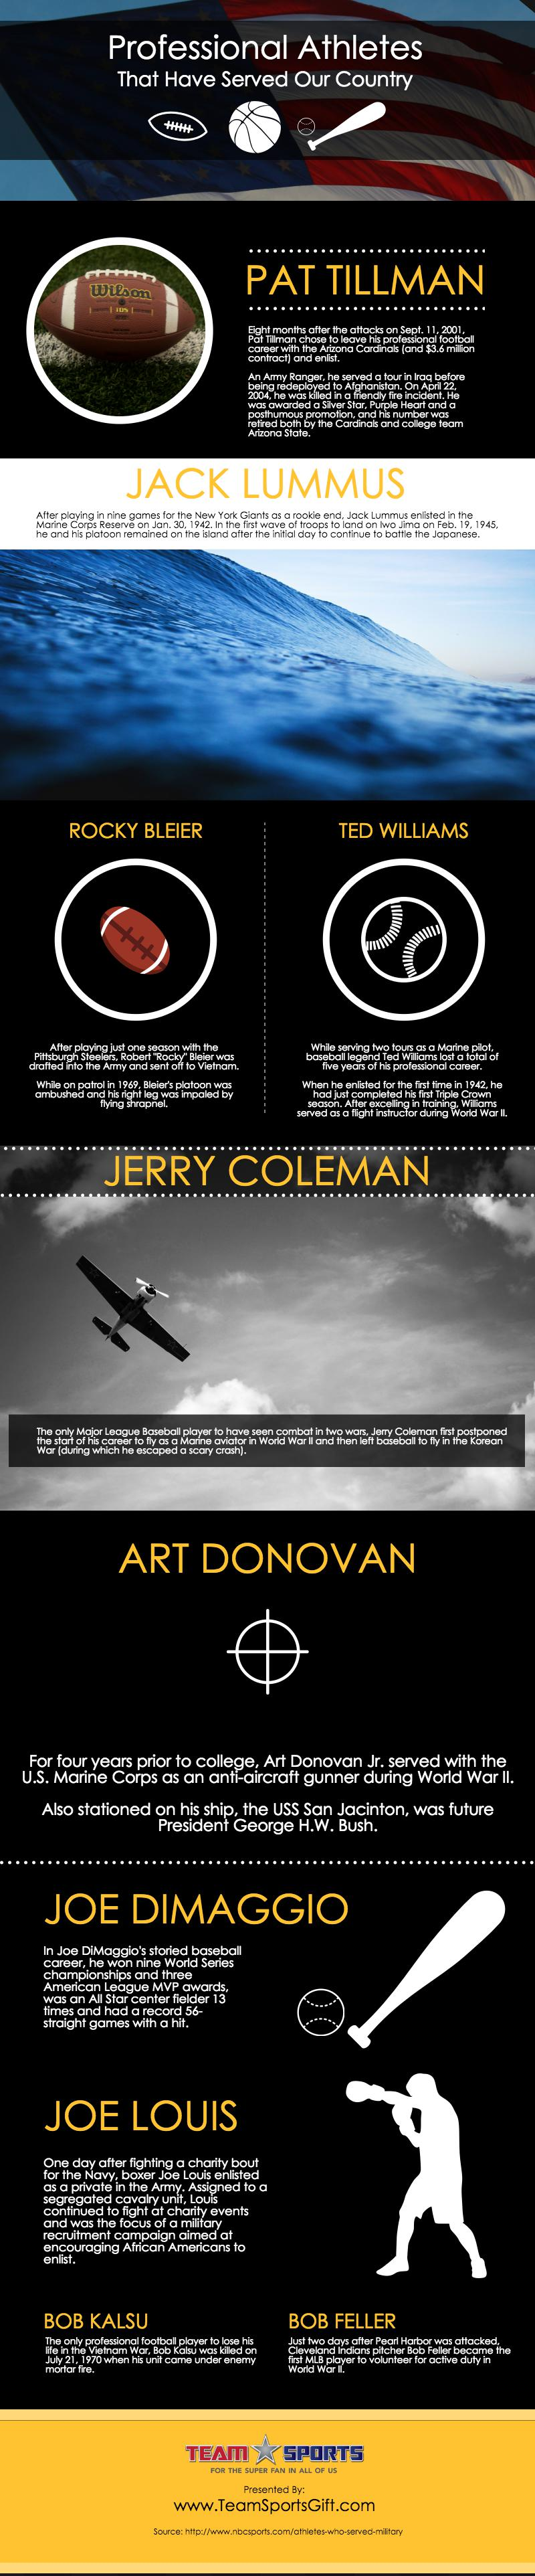 Professional Athletes That Have Served Our Country